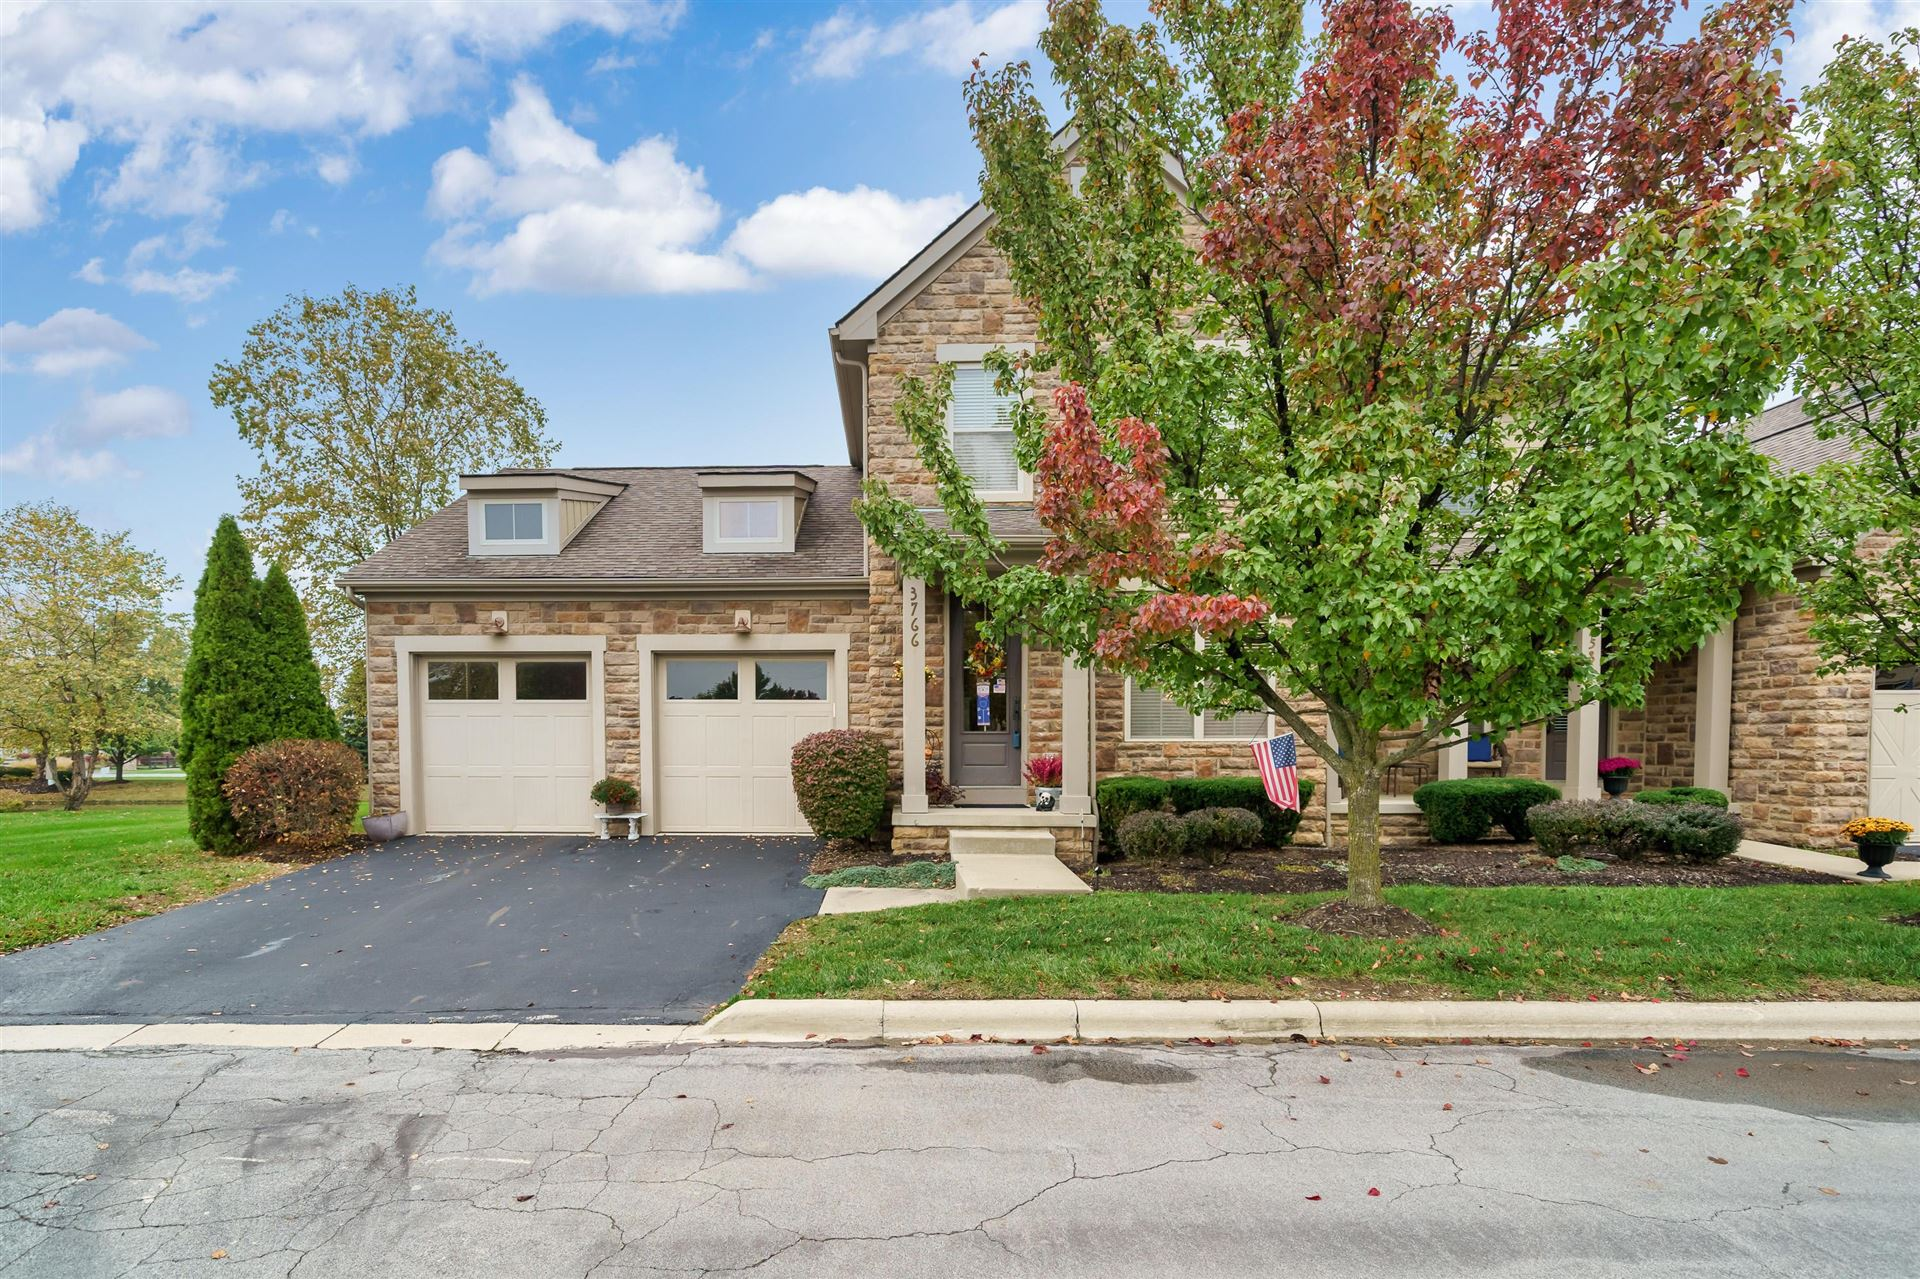 Photo of 3766 Echo Place, Powell, OH 43065 (MLS # 220038135)